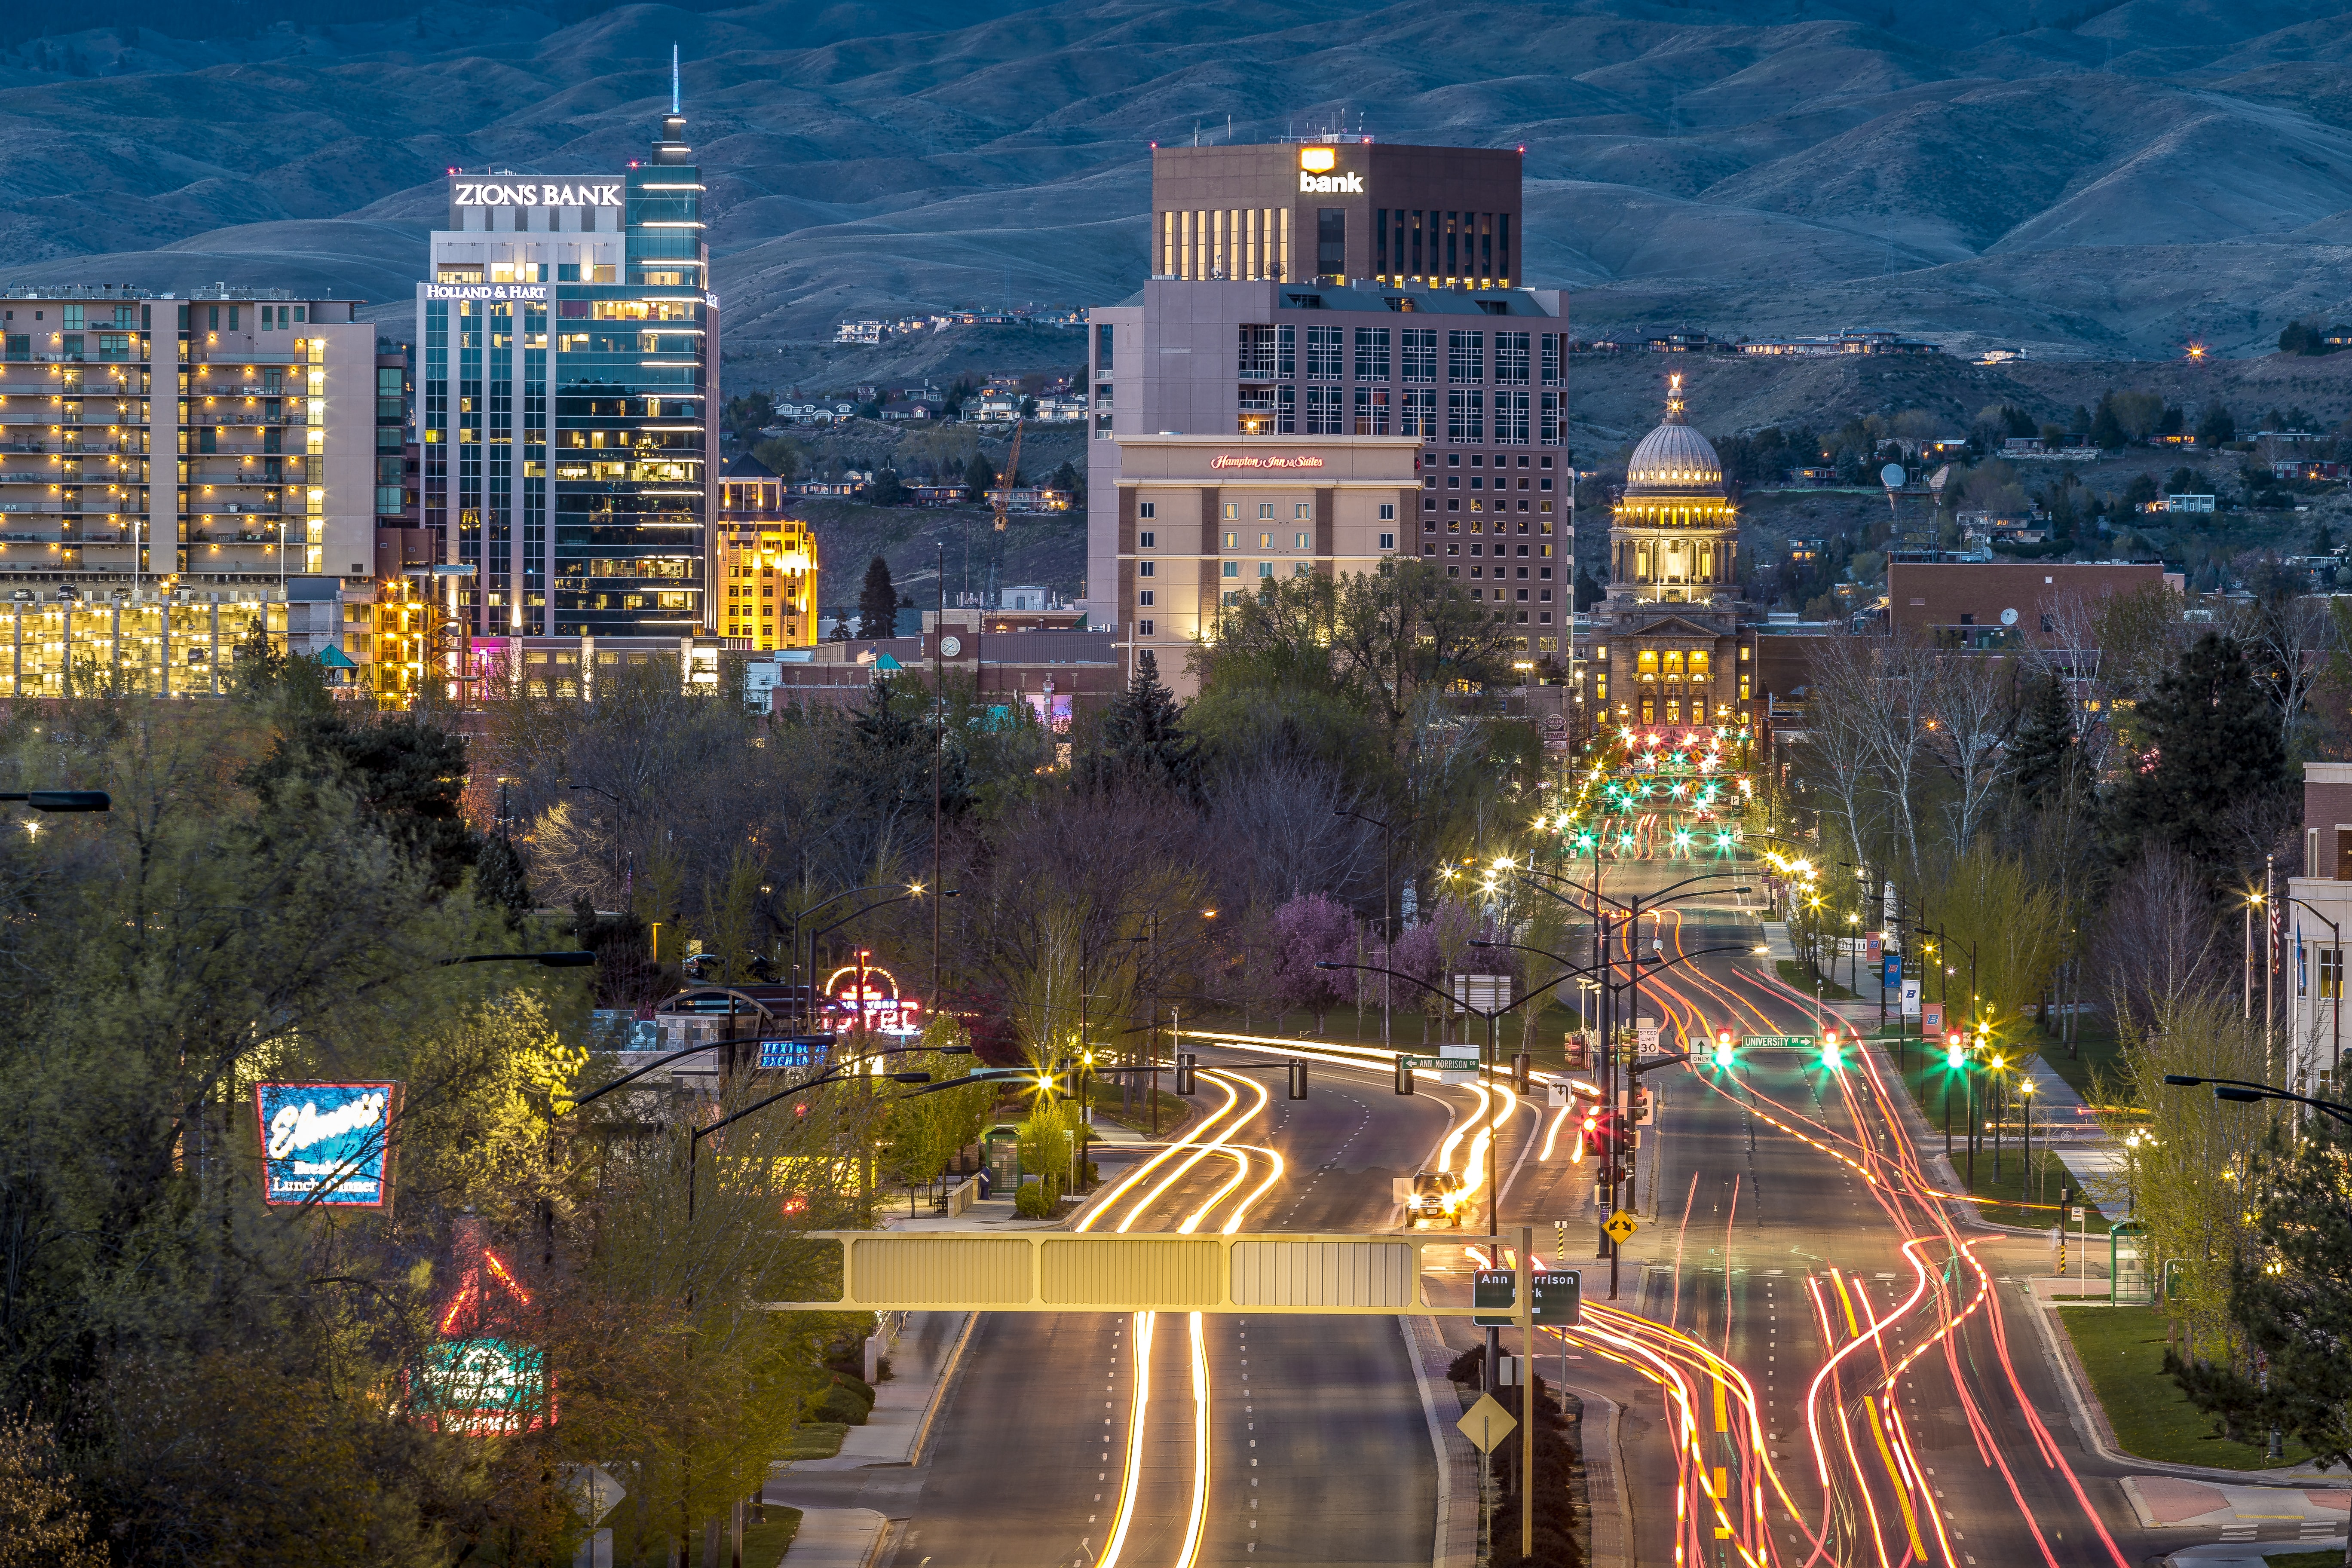 Long shot time lapse of urban traffic and skyscrapers in Boise at night